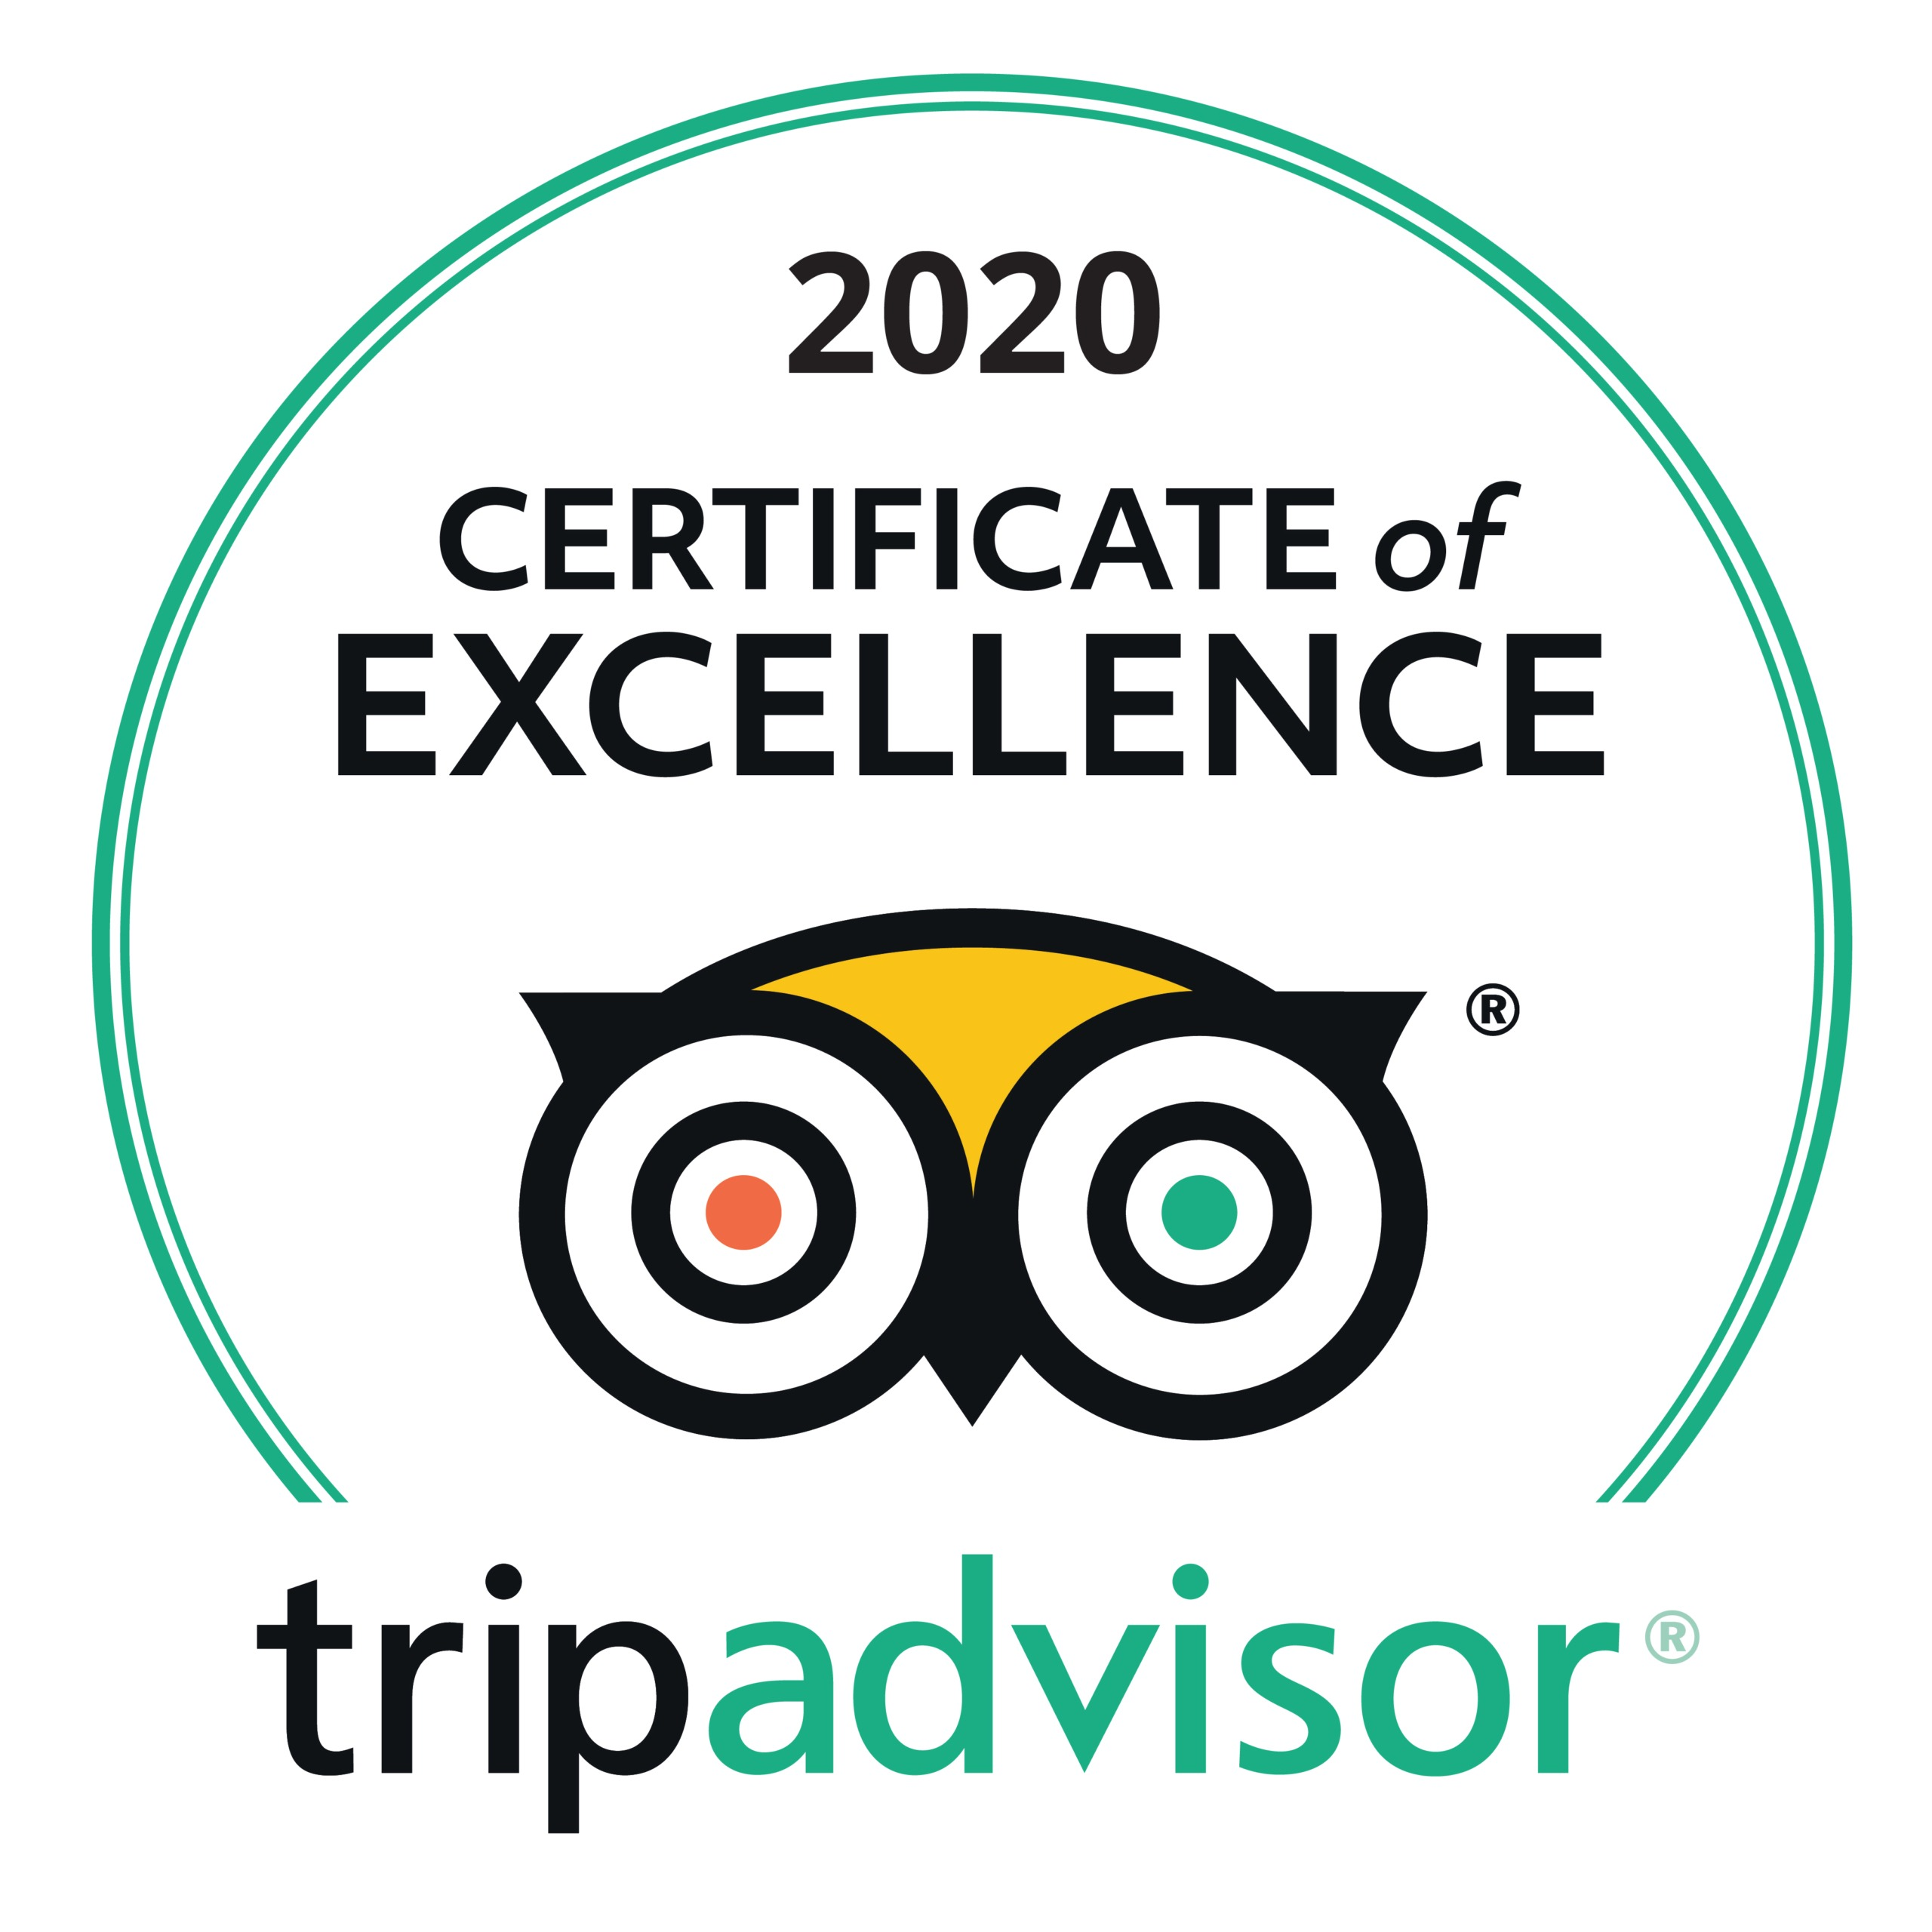 Tripadvisor 2020 Certificate of Excellence Spa South Africa